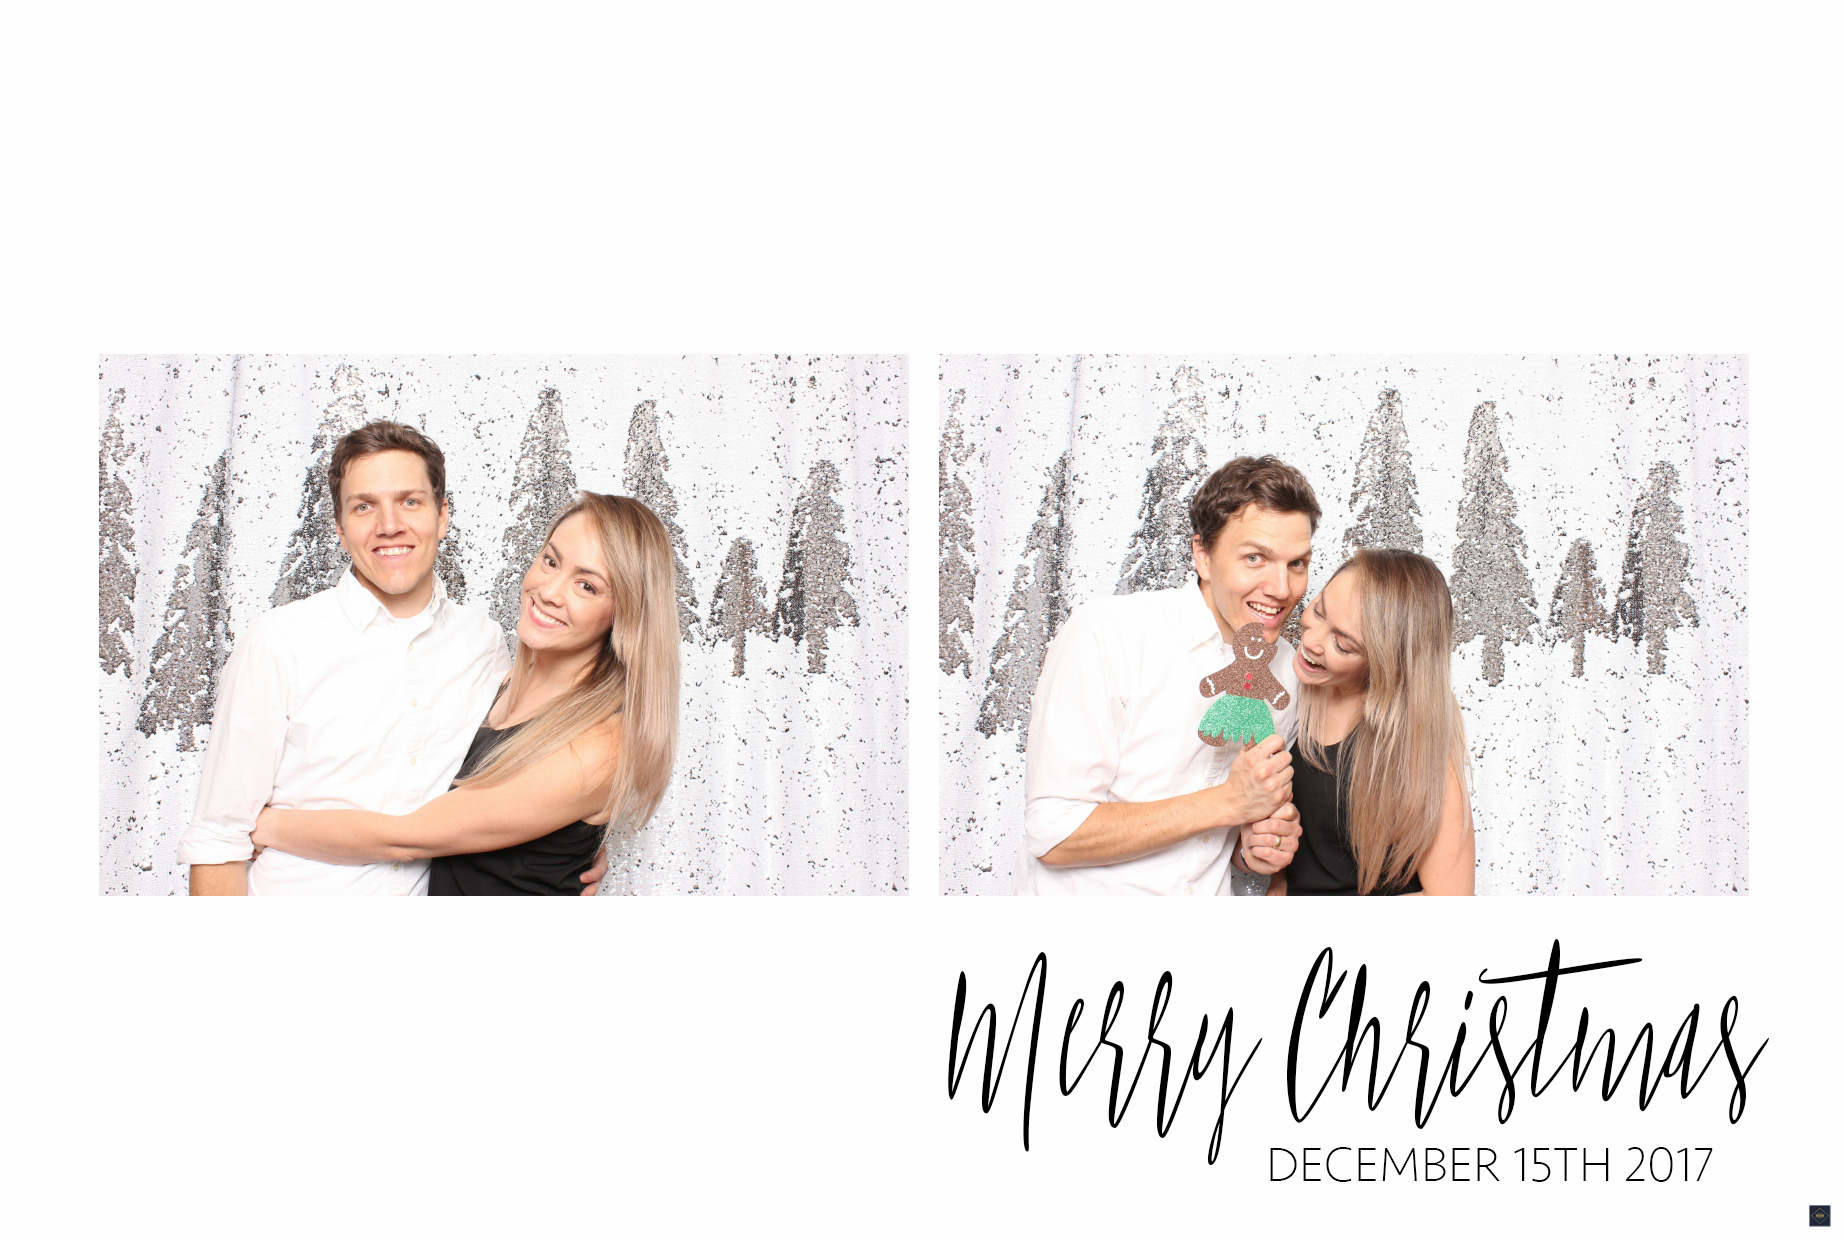 9df7c-traditionalchristmasparty.jpgtraditionalchristmasparty.jpg